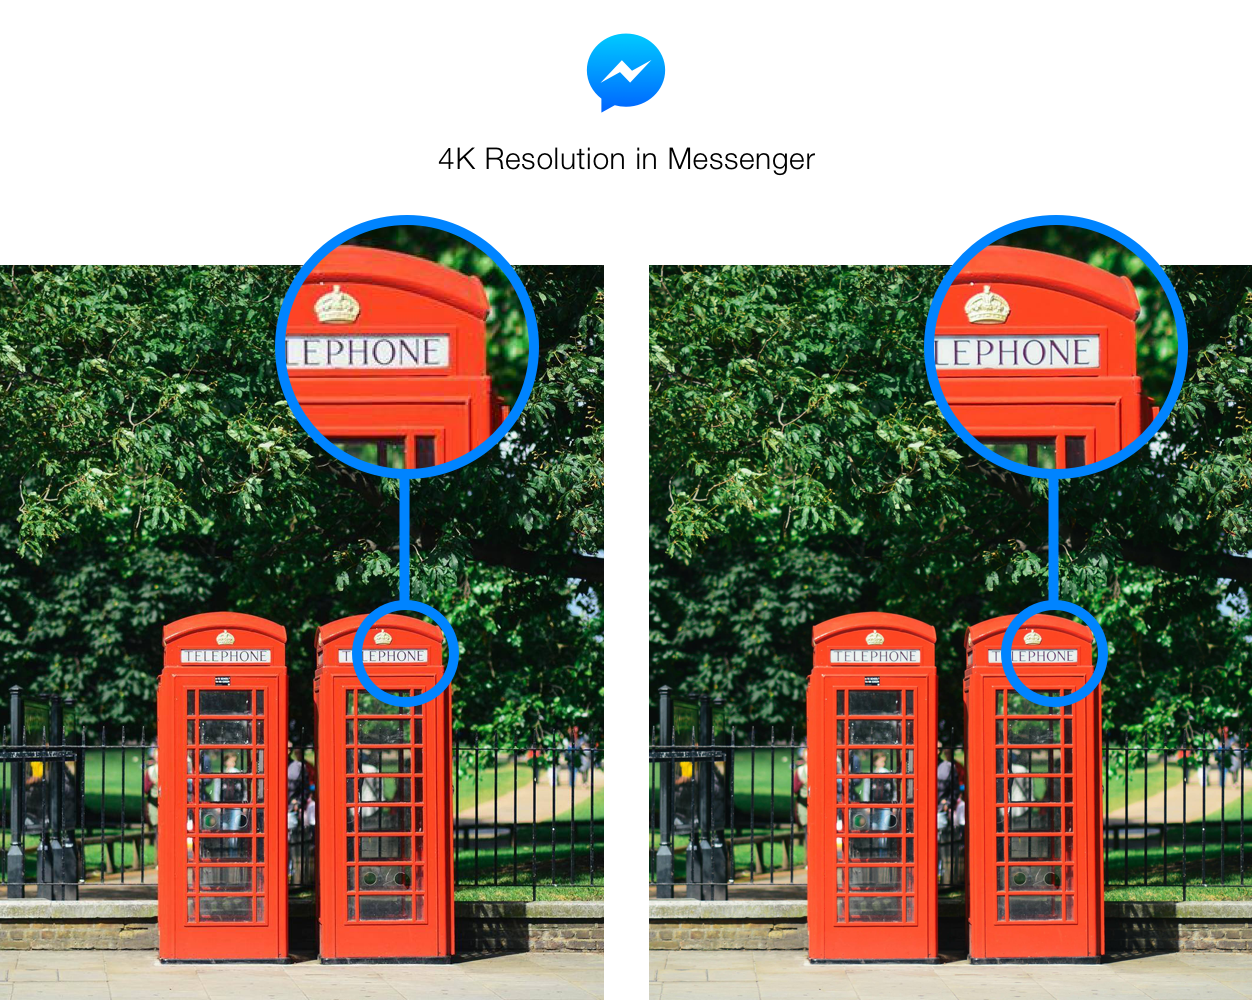 Facebook Messenger now allows you to send higher resolution photos